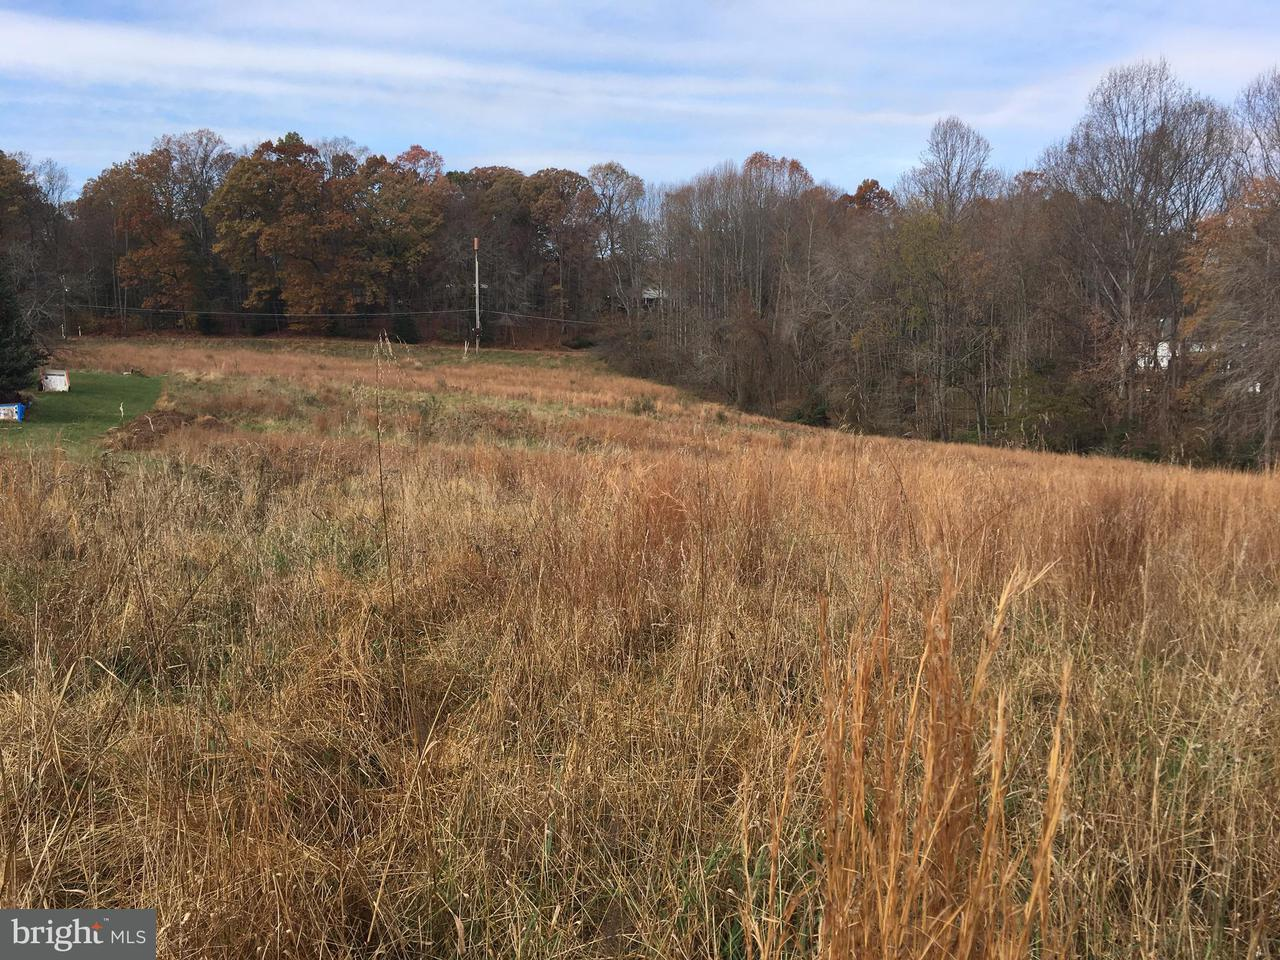 Land for Sale at 511 UTTERBACK STORE Road 511 UTTERBACK STORE Road Great Falls, Virginia 22066 United States